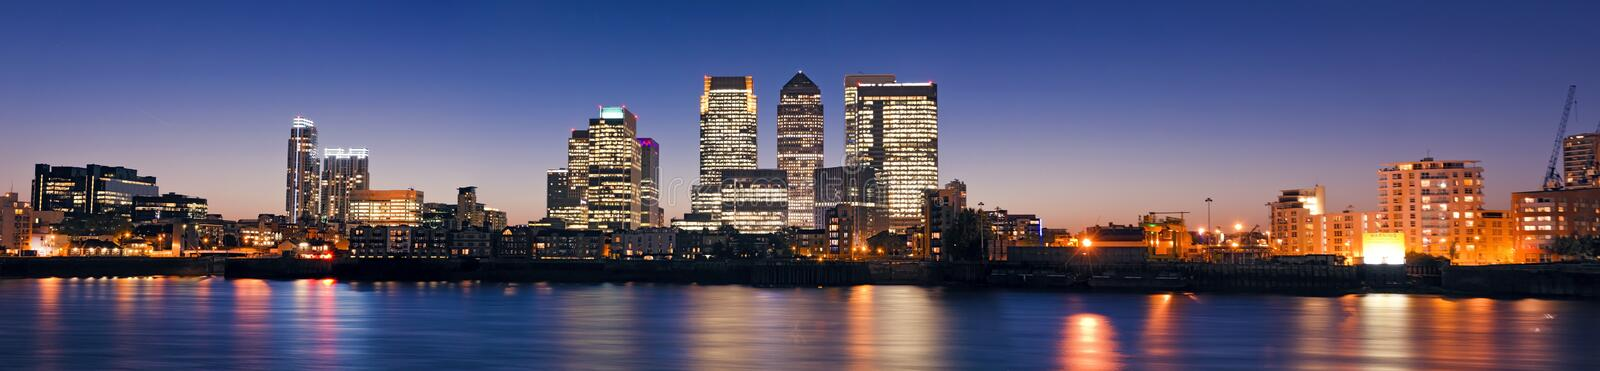 Canary Wharf at twilight. Canary Wharf at dusk, Famous skyscrapers of London's financial district at twilight. This view includes: Credit Suisse, Morgan Stanley royalty free stock image